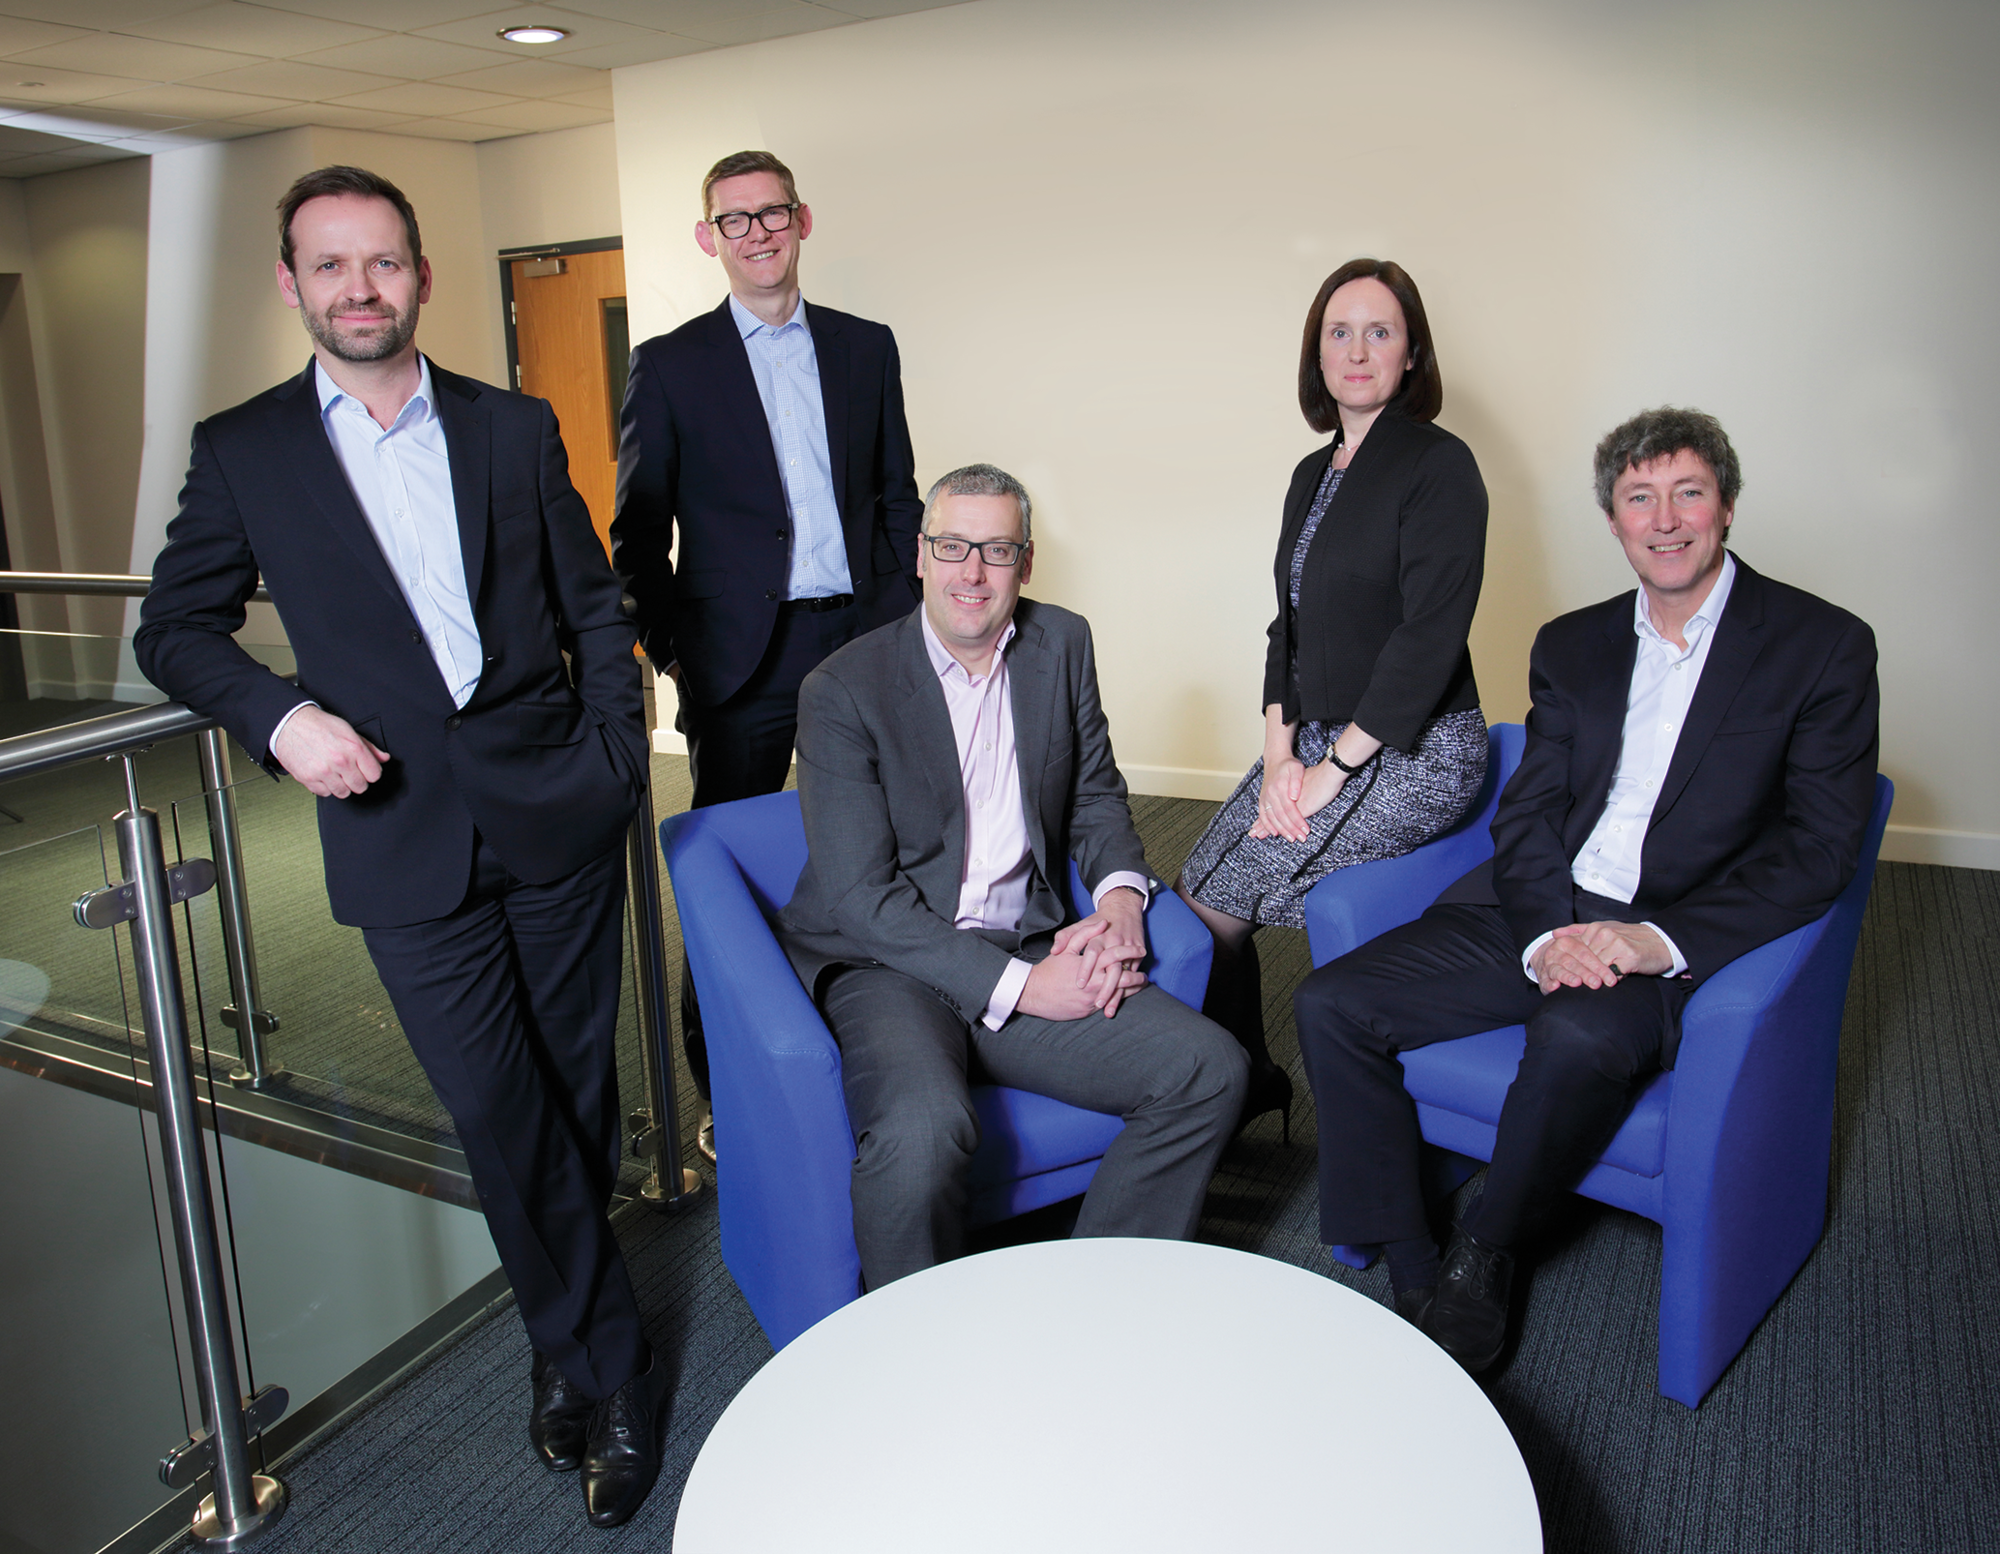 From Left to Right: Chris Rigg, Anthony Evans, Craig Swinhoe, Sarah Forster and Andrew Davison